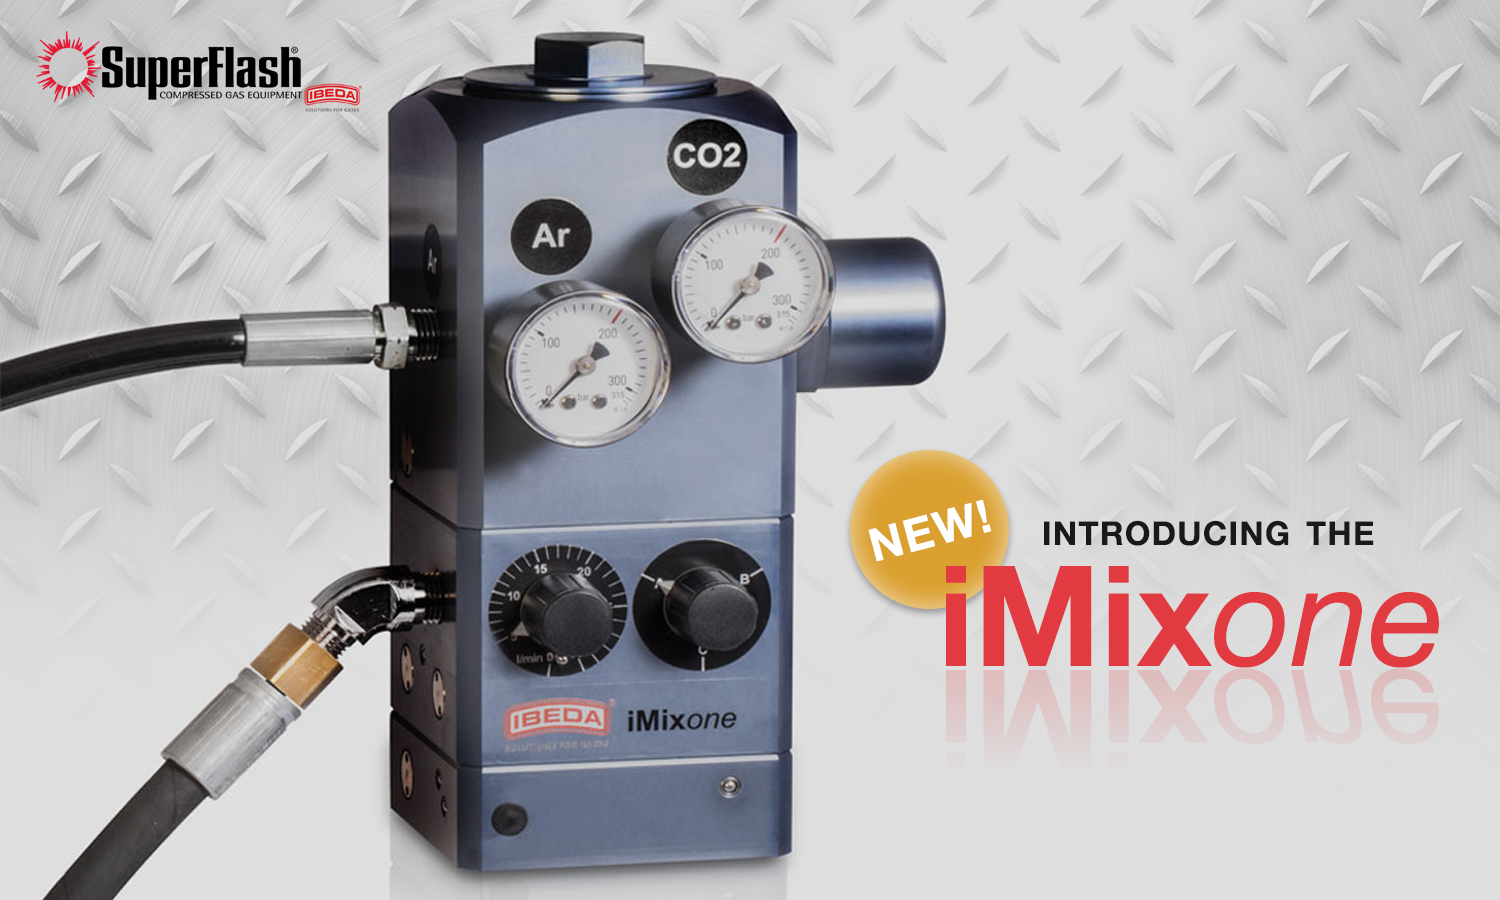 Introducing the iMixone Gas Mixer!